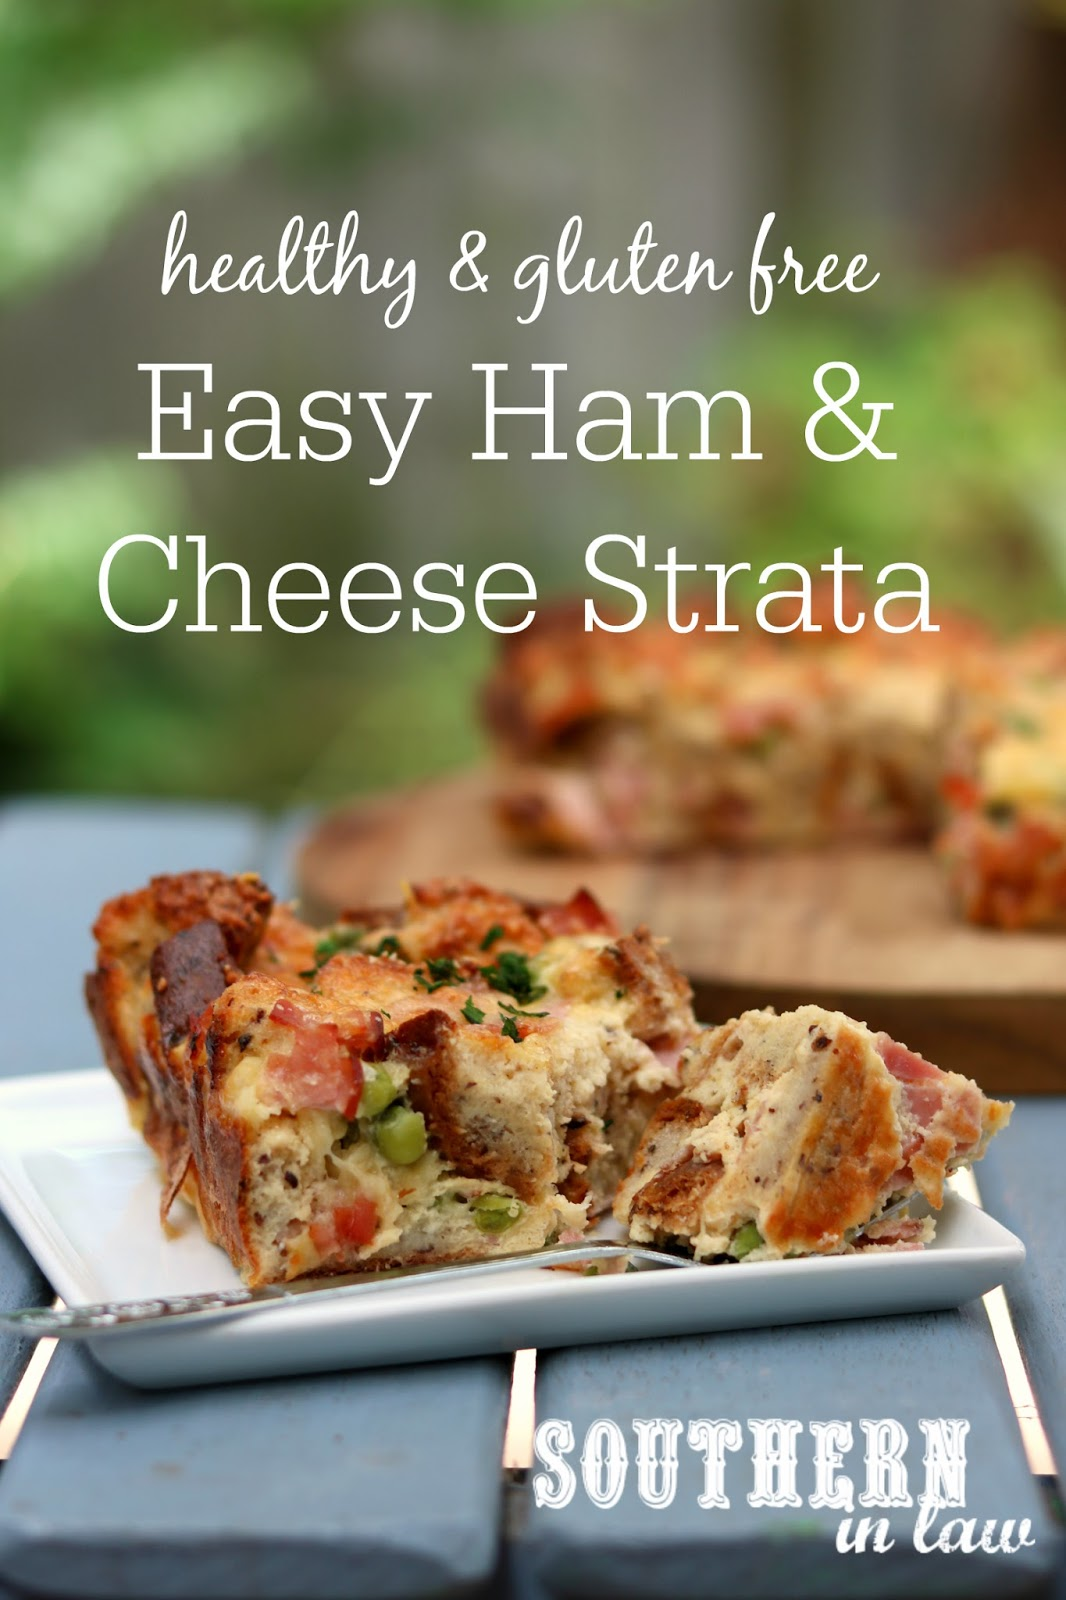 Southern in law recipe easy gluten free ham and cheese strata easy healthy ham and cheese strata recipe gluten free healthy low fat forumfinder Choice Image